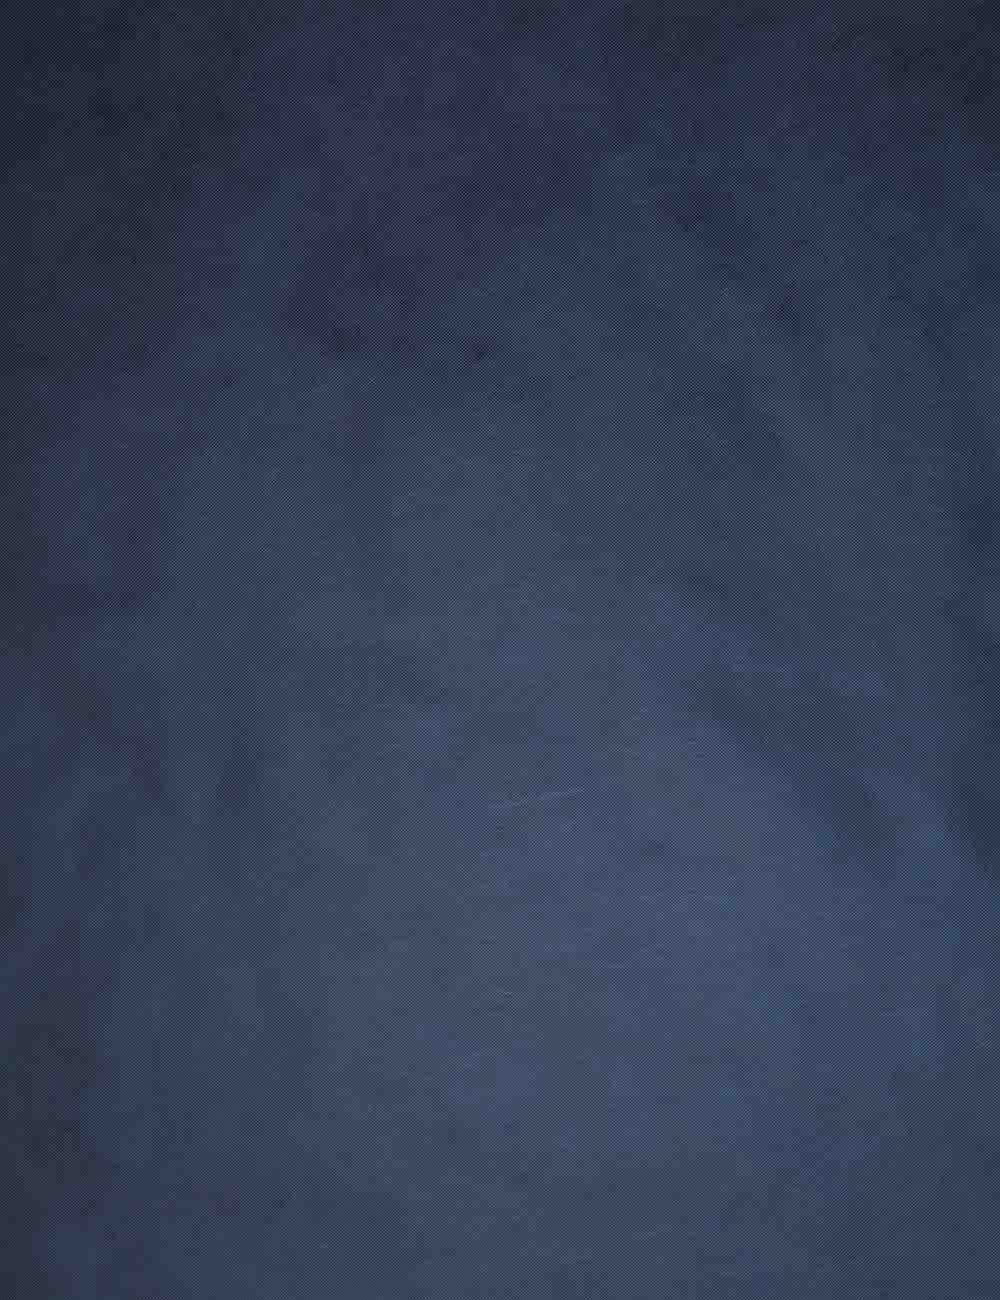 Nearly Solid Texture Deep Blue Oliphant Backdrop For Photo Studio